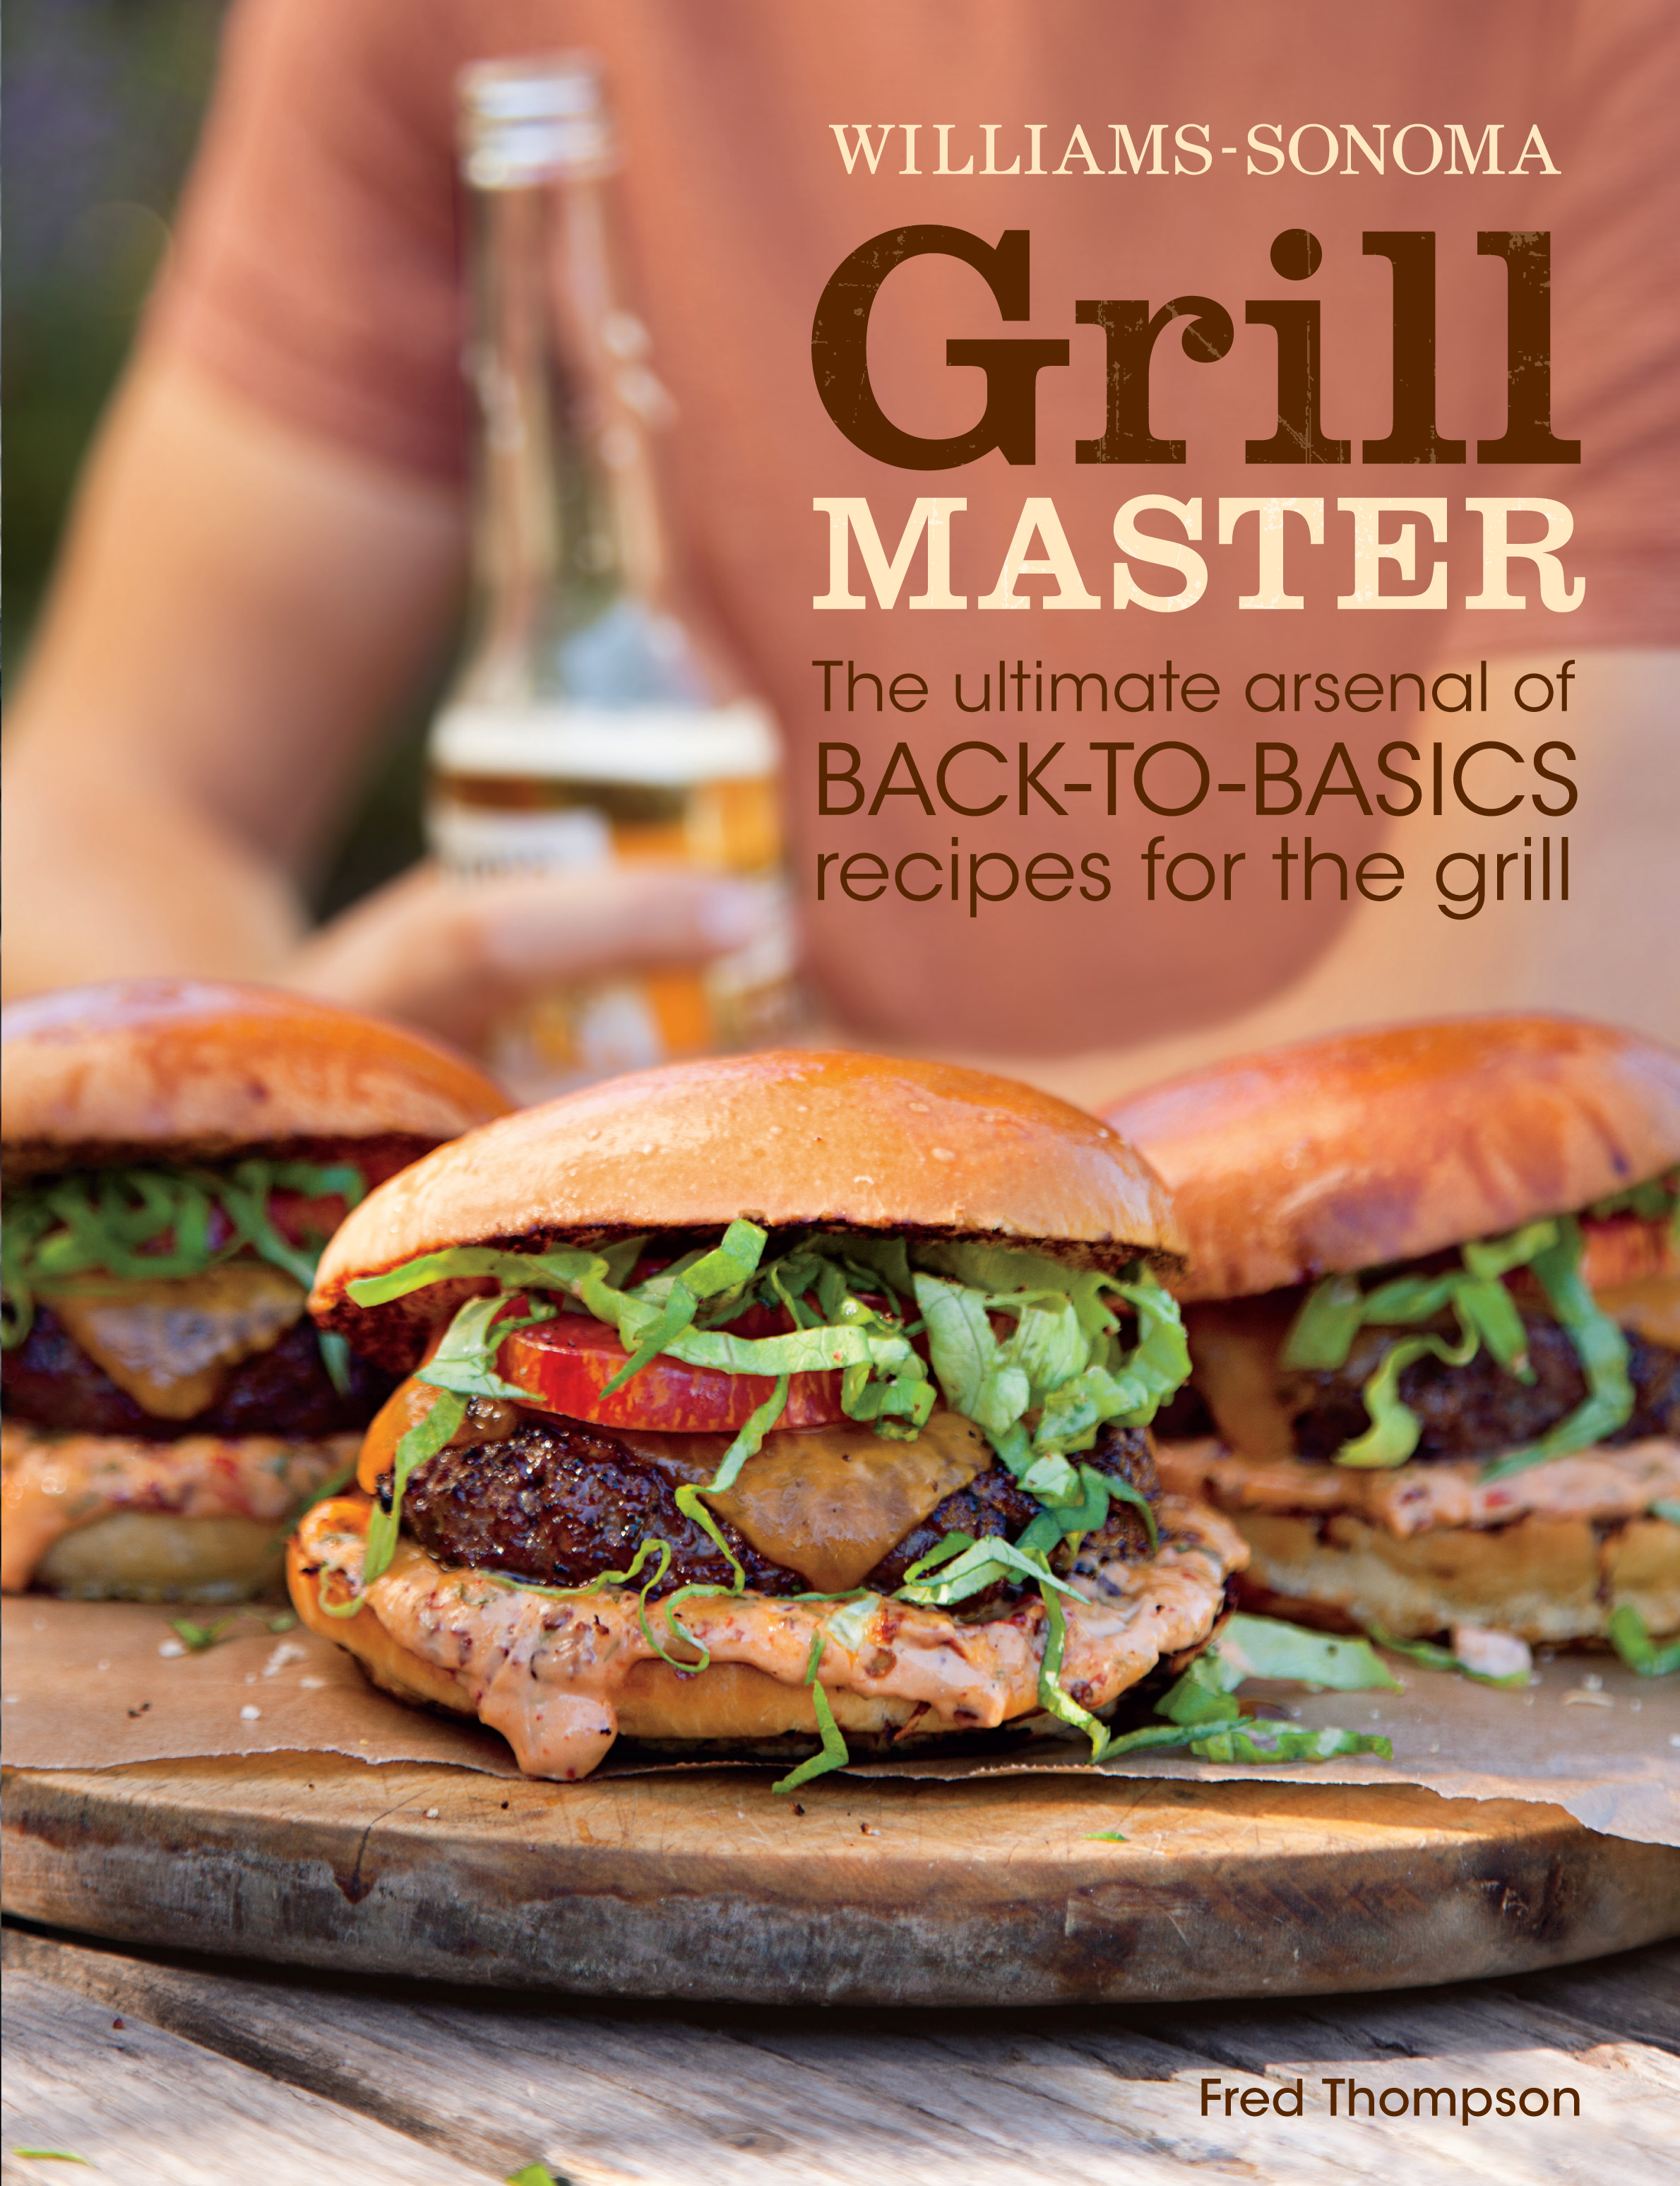 Grill-master-(williams-sonoma)-9781616286316_hr